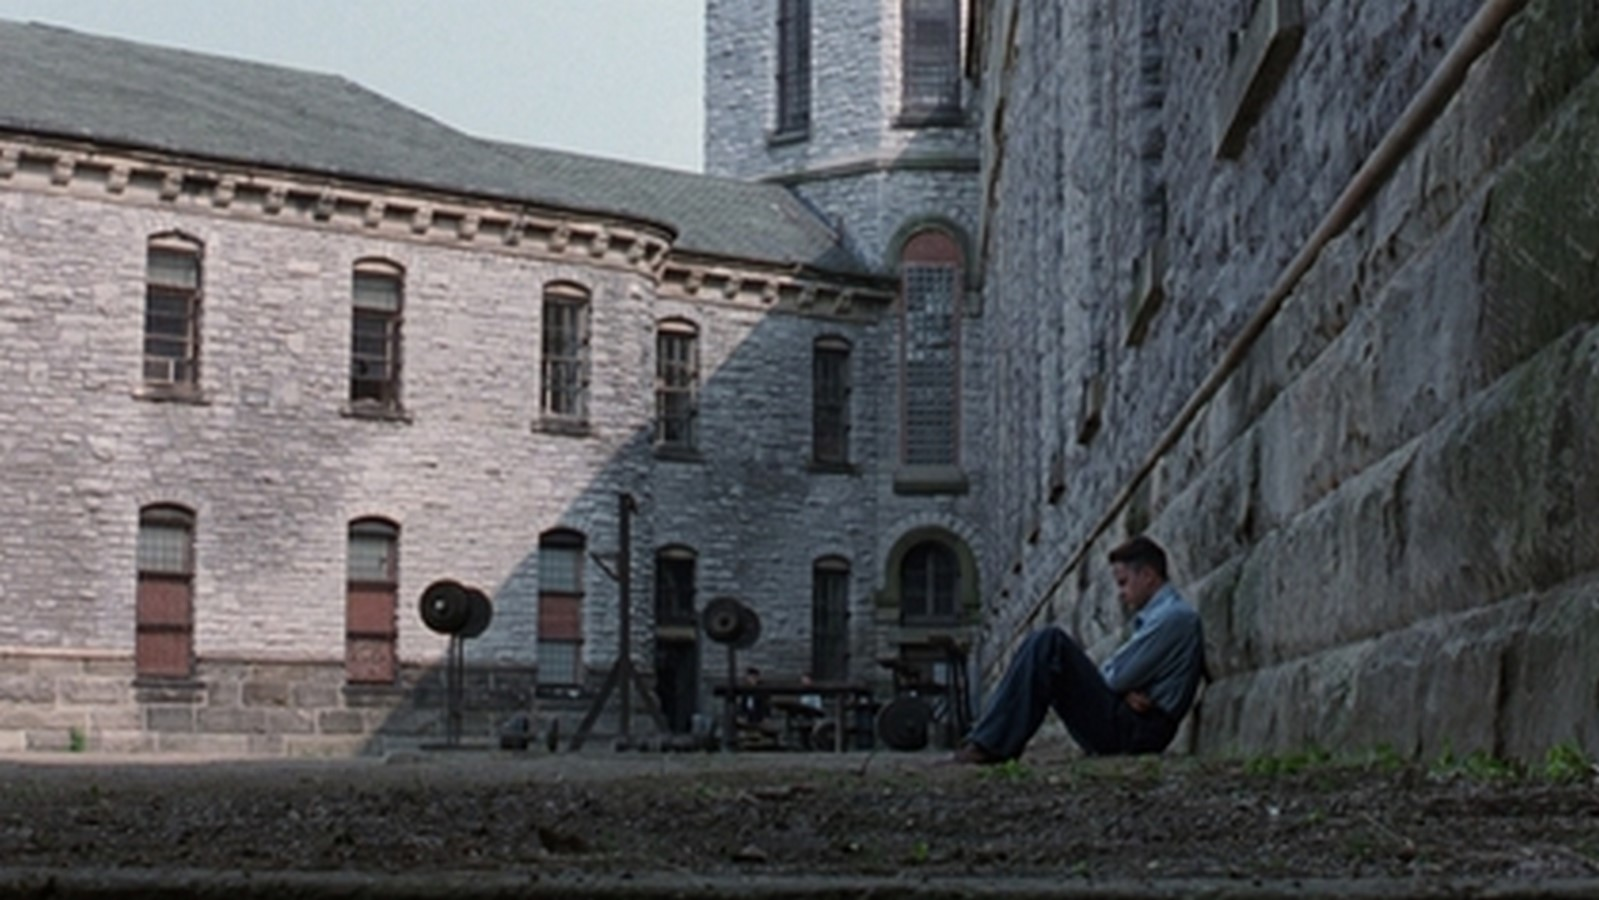 An architectural Review of The Shawshank Redemption - Sheet2